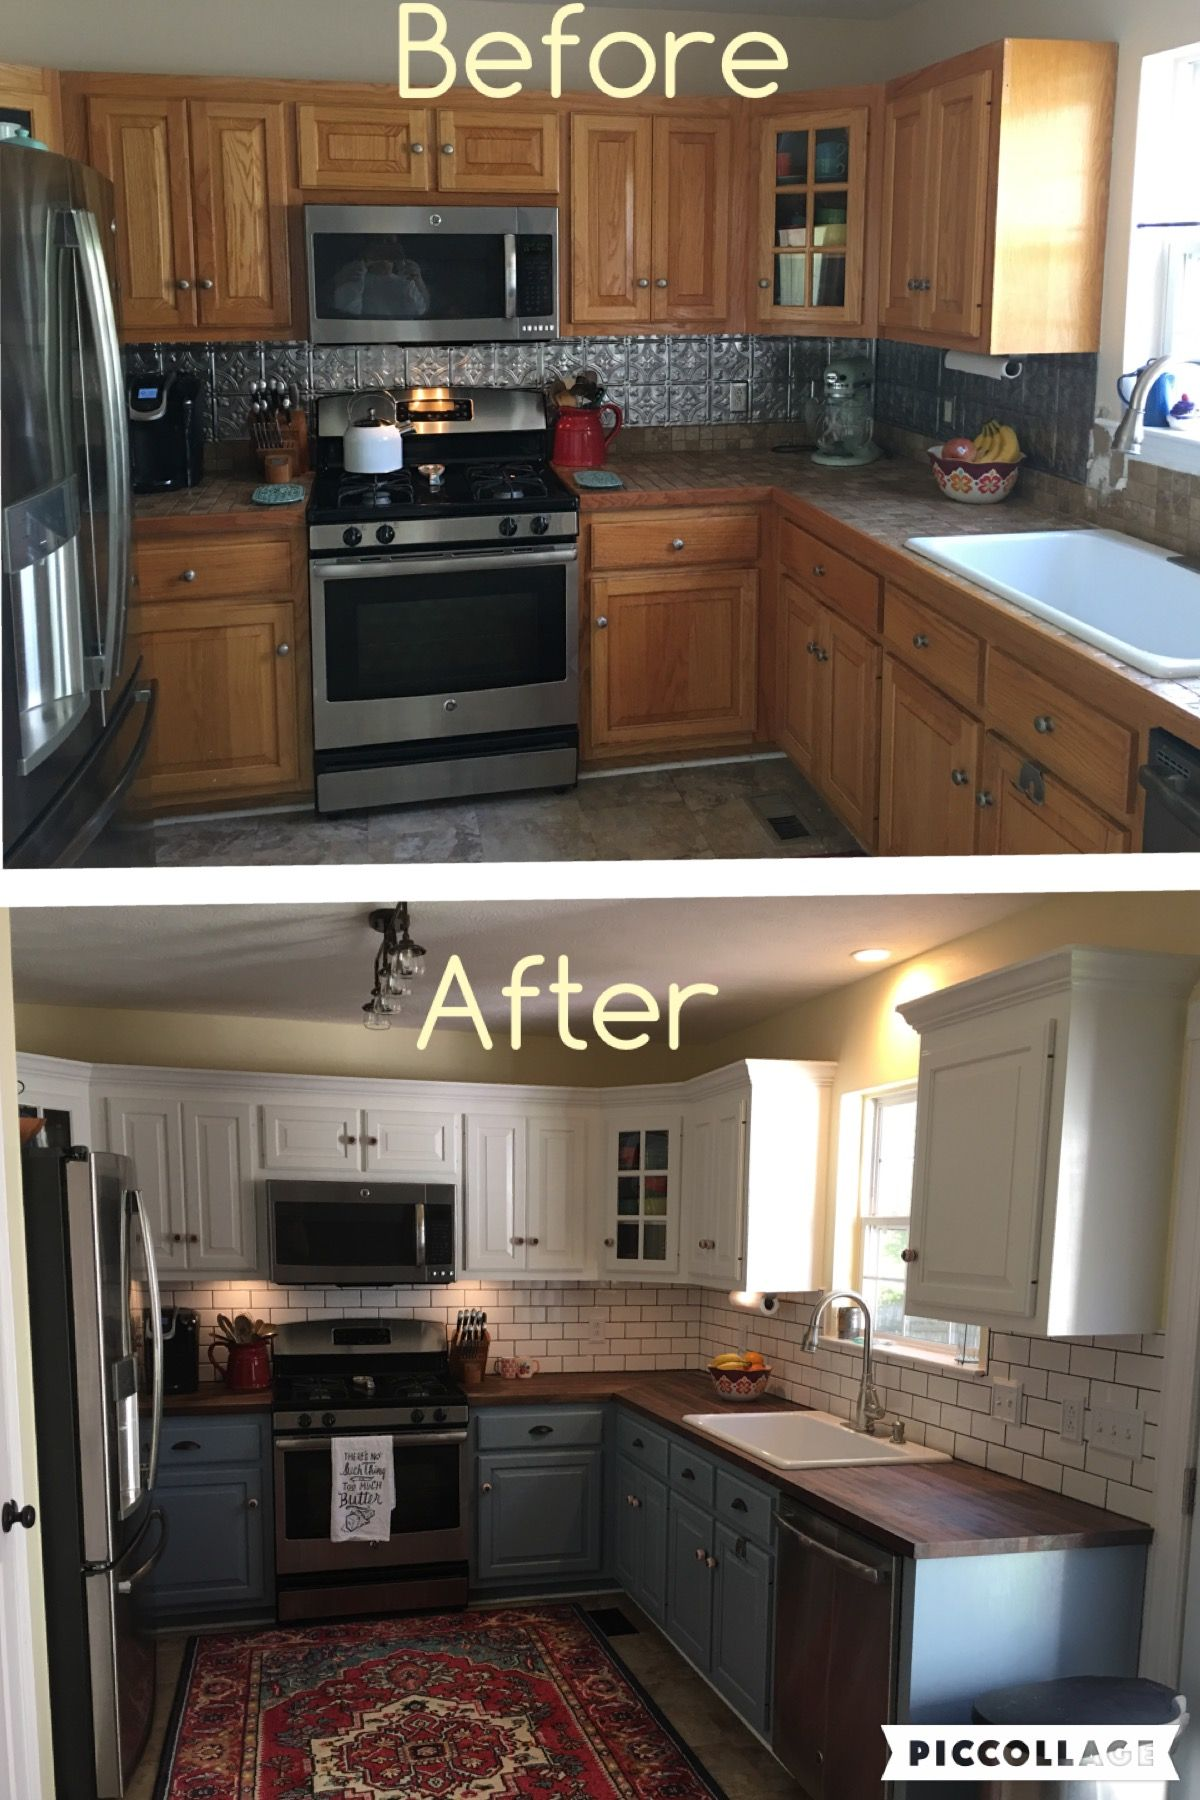 two toned cabinets. valspar cabinet enamel from lowes=successful